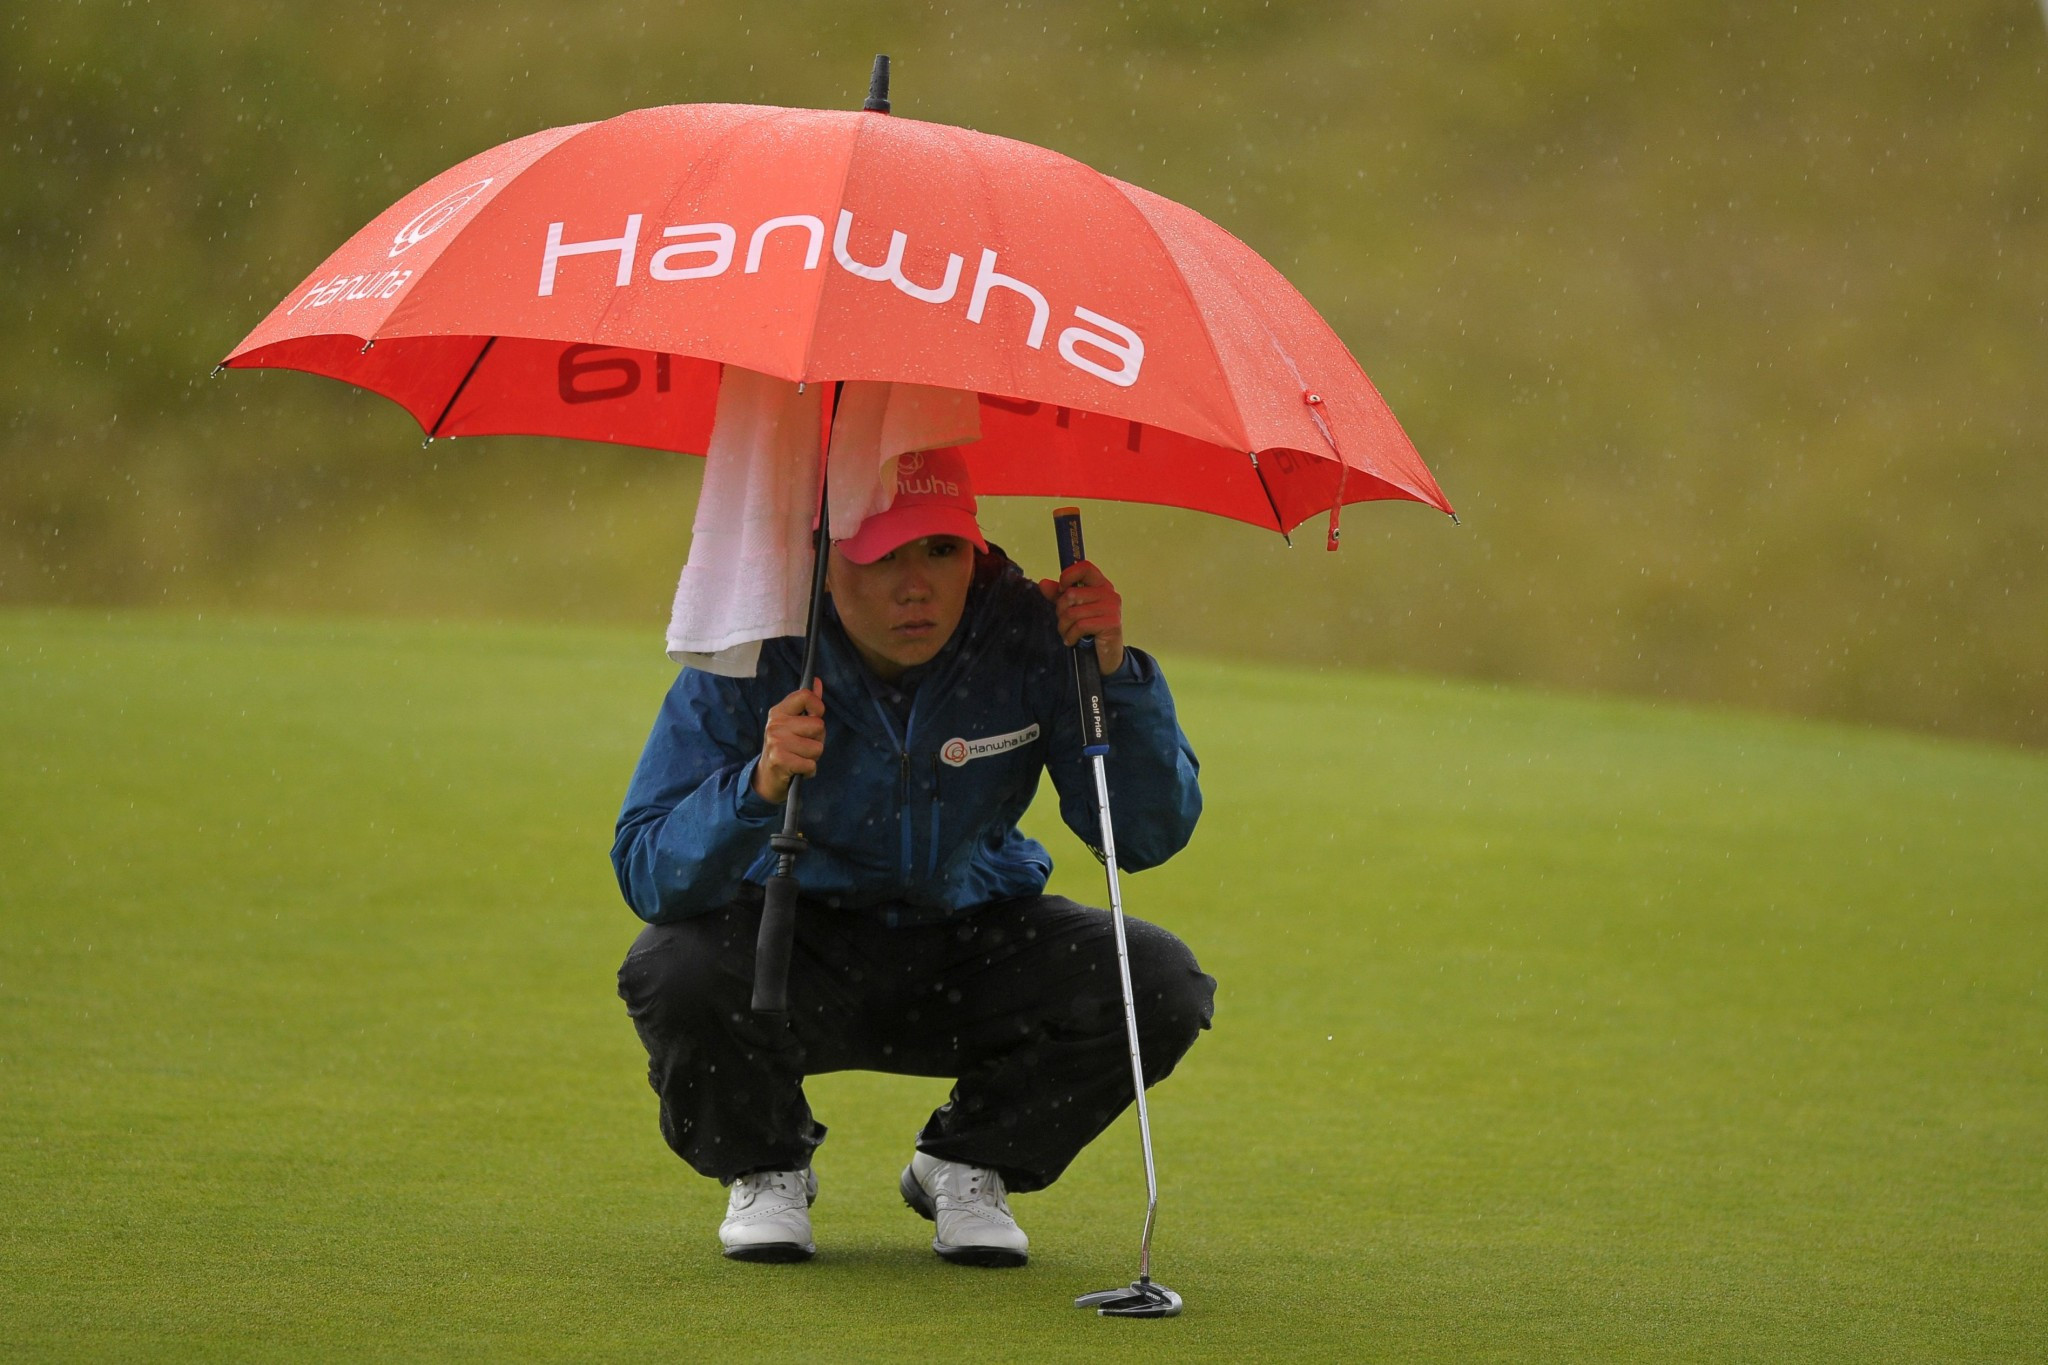 Kim takes charge at Women's British Open